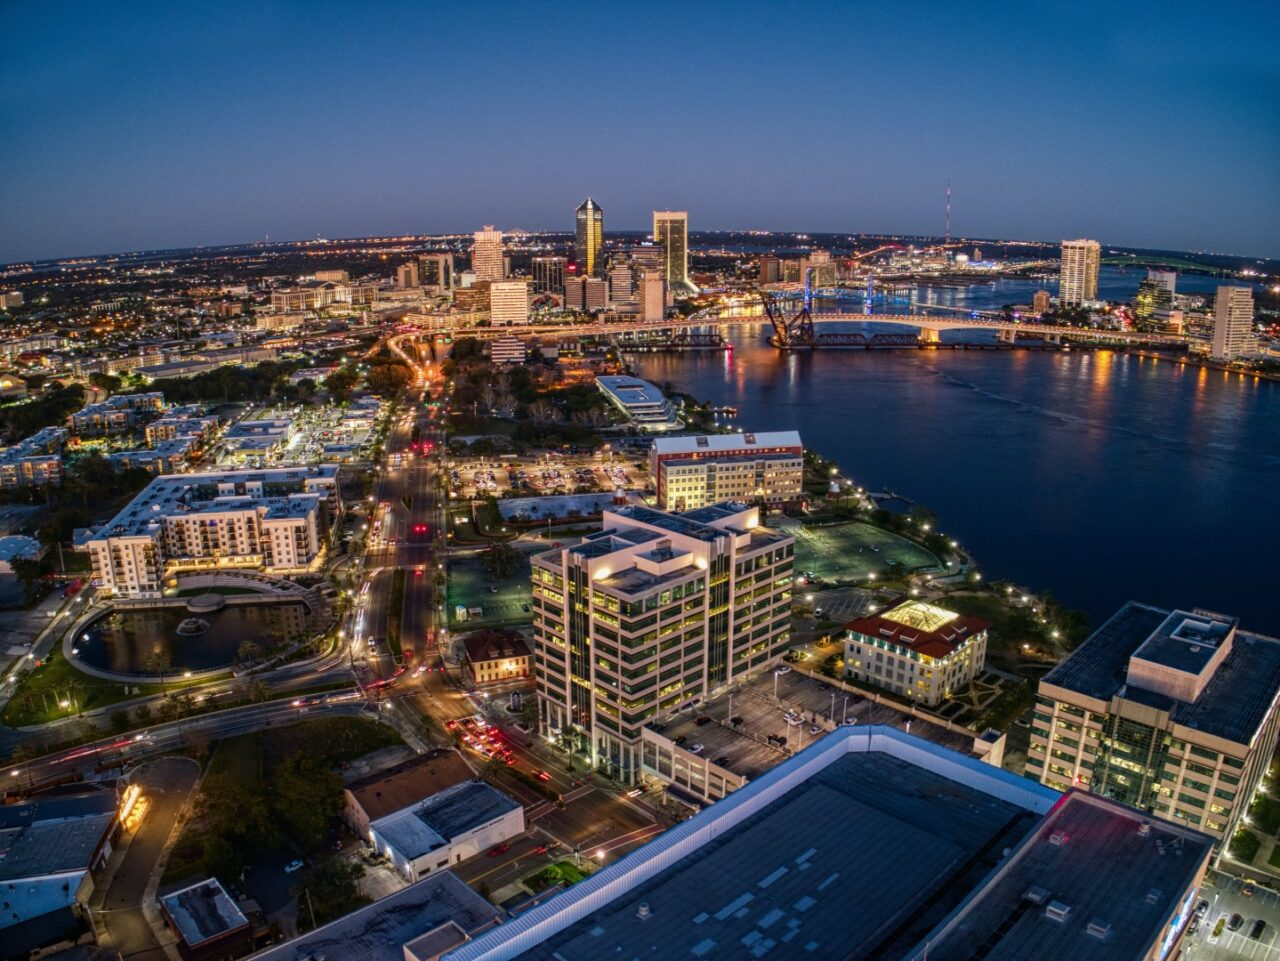 jacksonville-skyline-Large-1280x961.jpeg